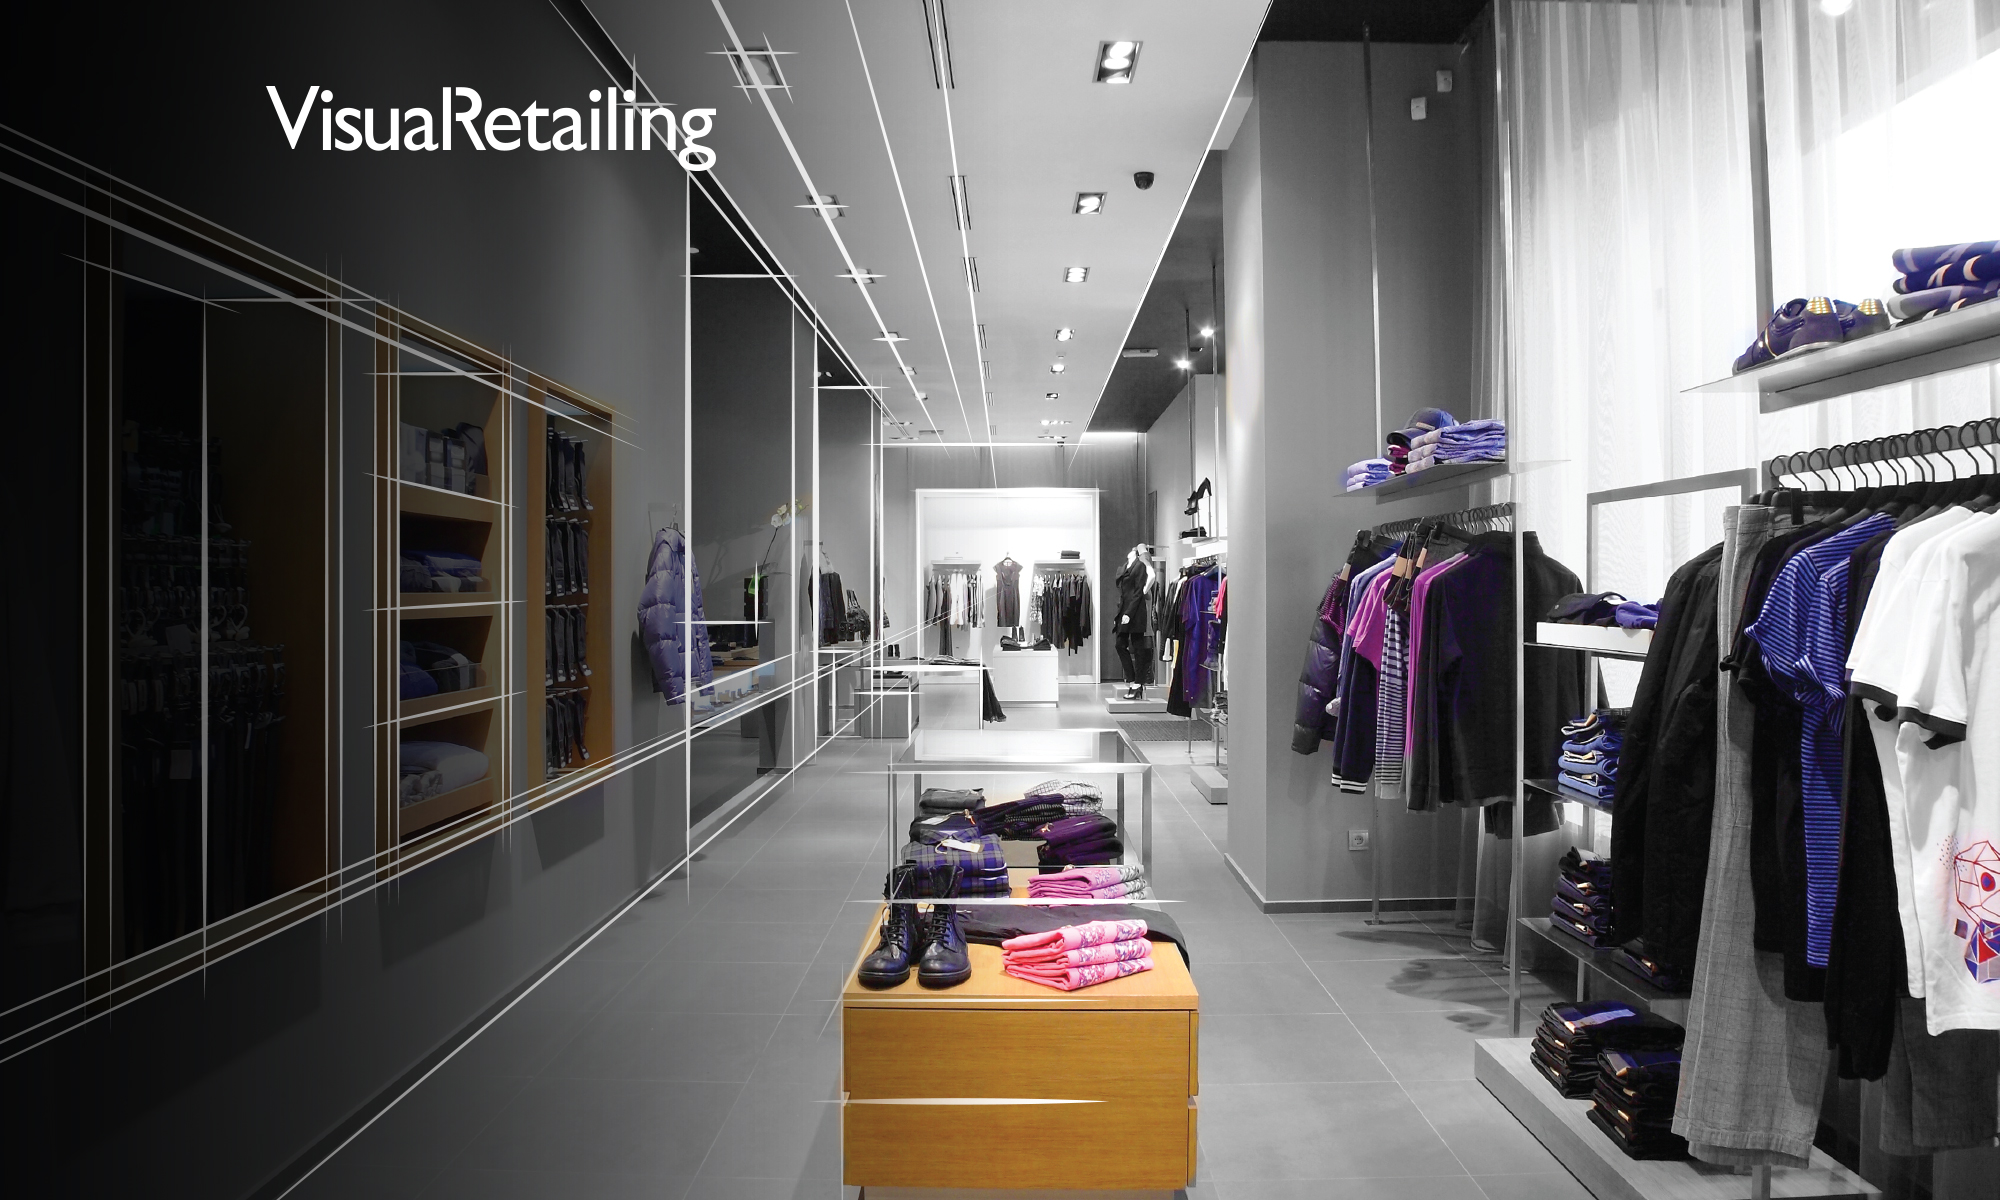 Visual Retailing   Web Design・Content Creation・Project Management   During my collaboration with Visual Retailing I was overseeing everything visual and led creatives to create content and run campaigns.